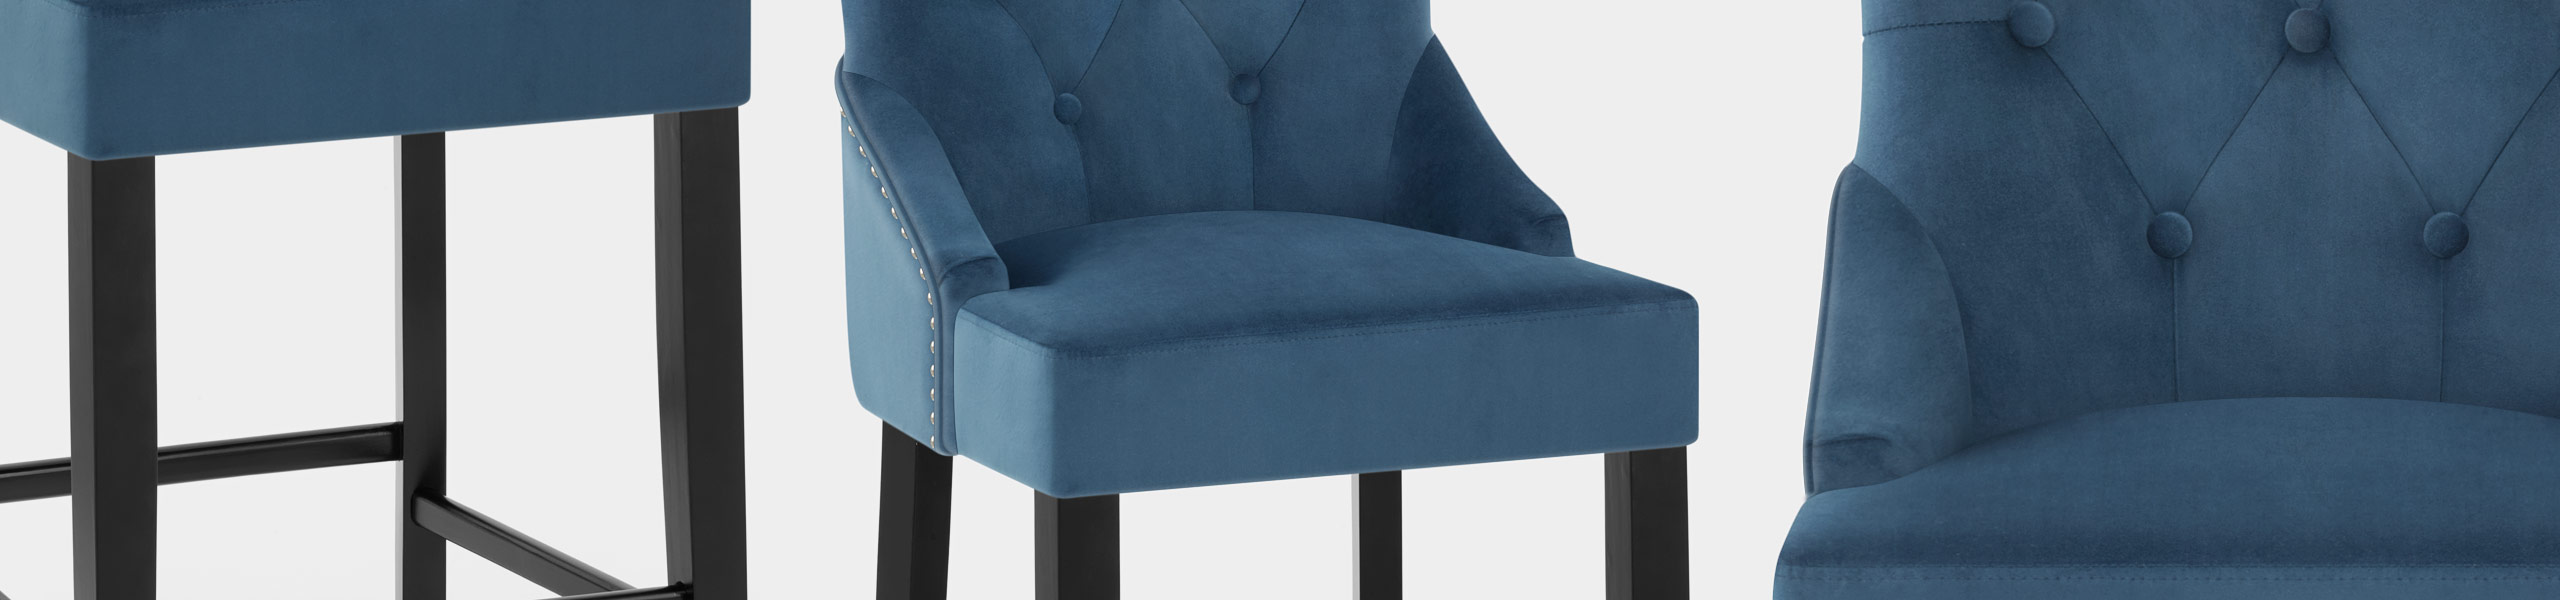 Loxley Stool Blue Velvet Video Banner